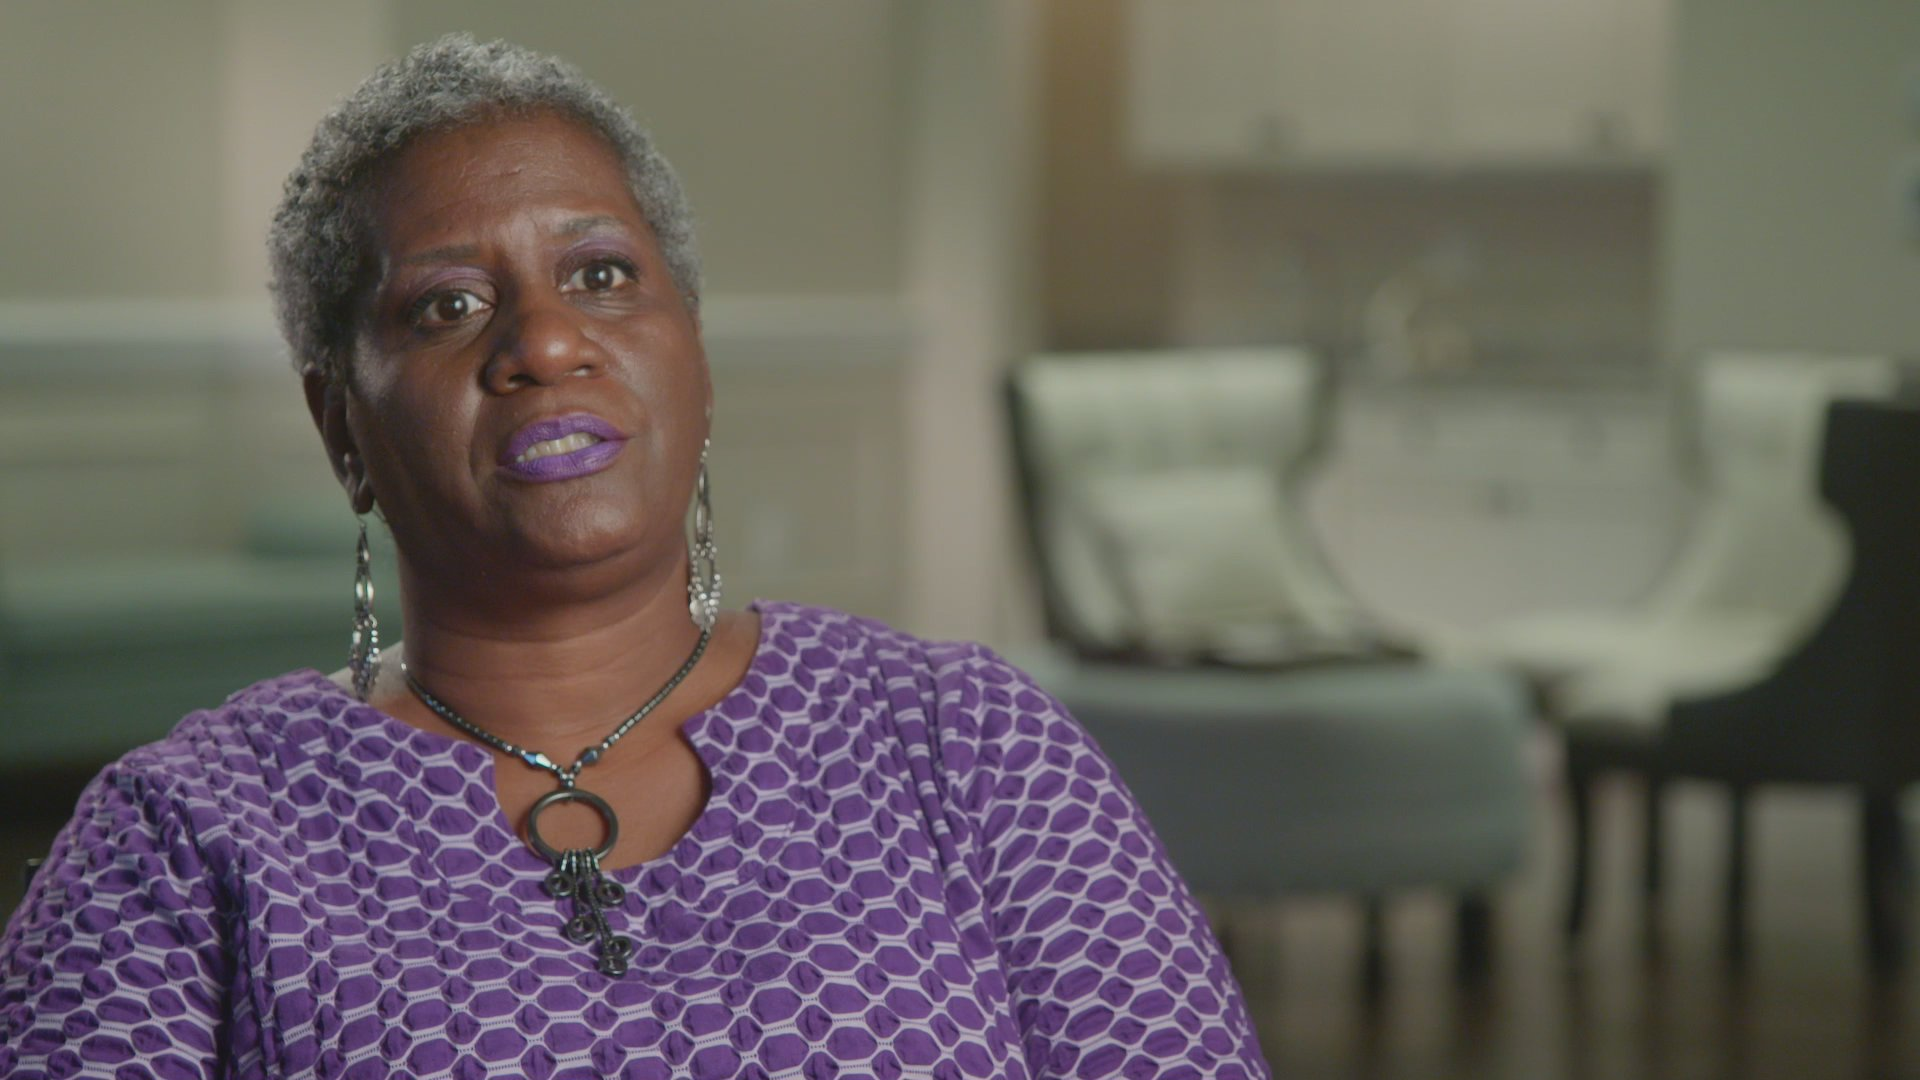 Buried in the Backyard: Sherri Jackson Goes Missing (Season 2, Episode 3)